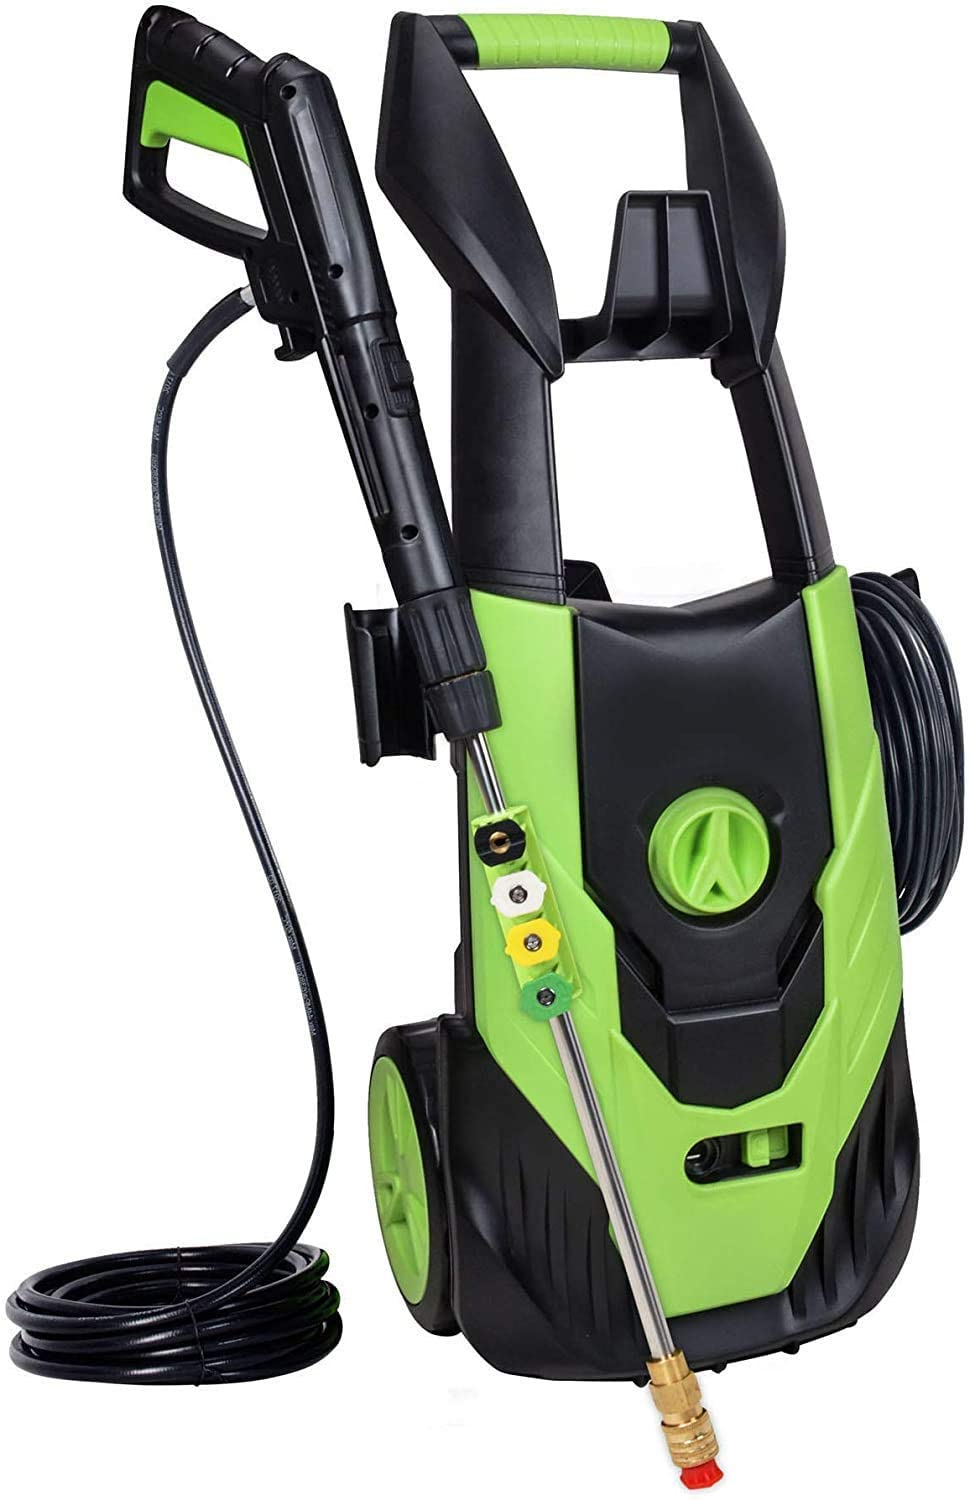 Qualidy Electric Pressure Washer